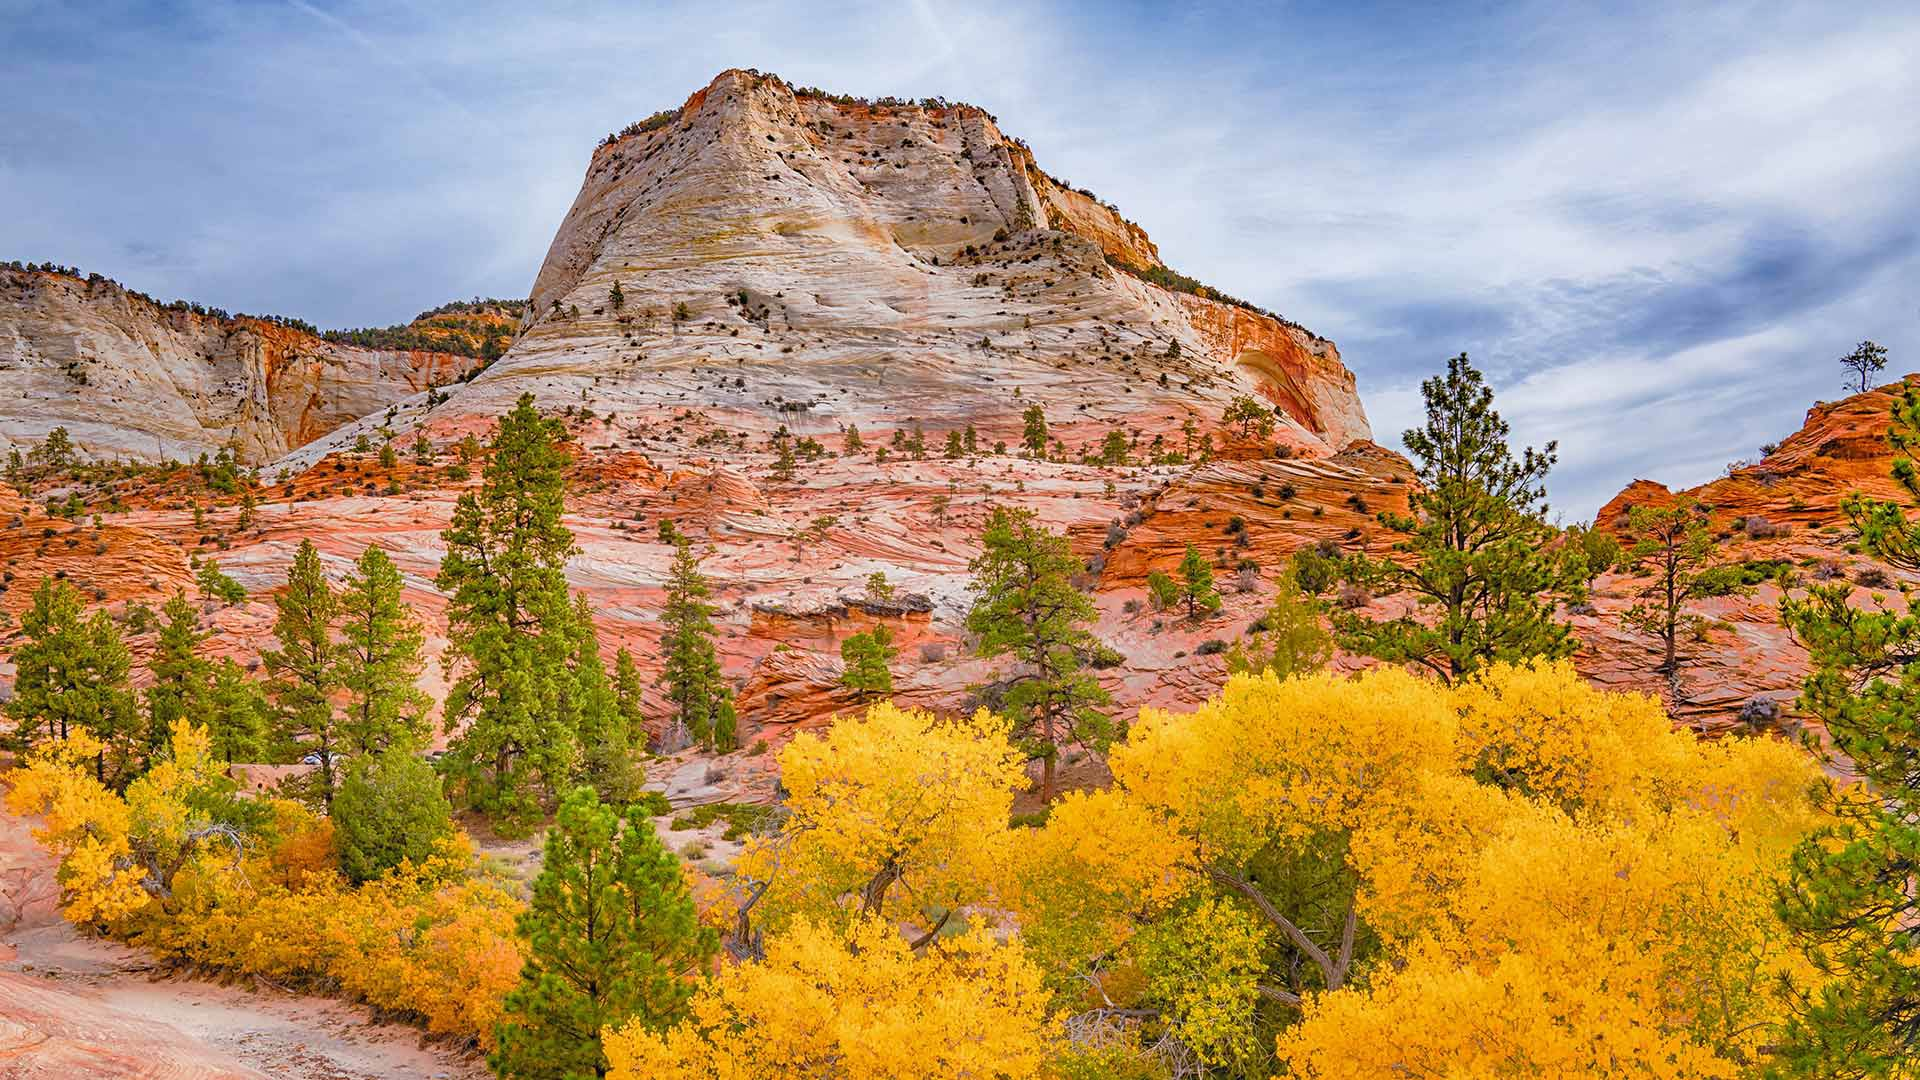 Fall colors in Zion National Park, Utah (© pabradyphoto/Getty Images)